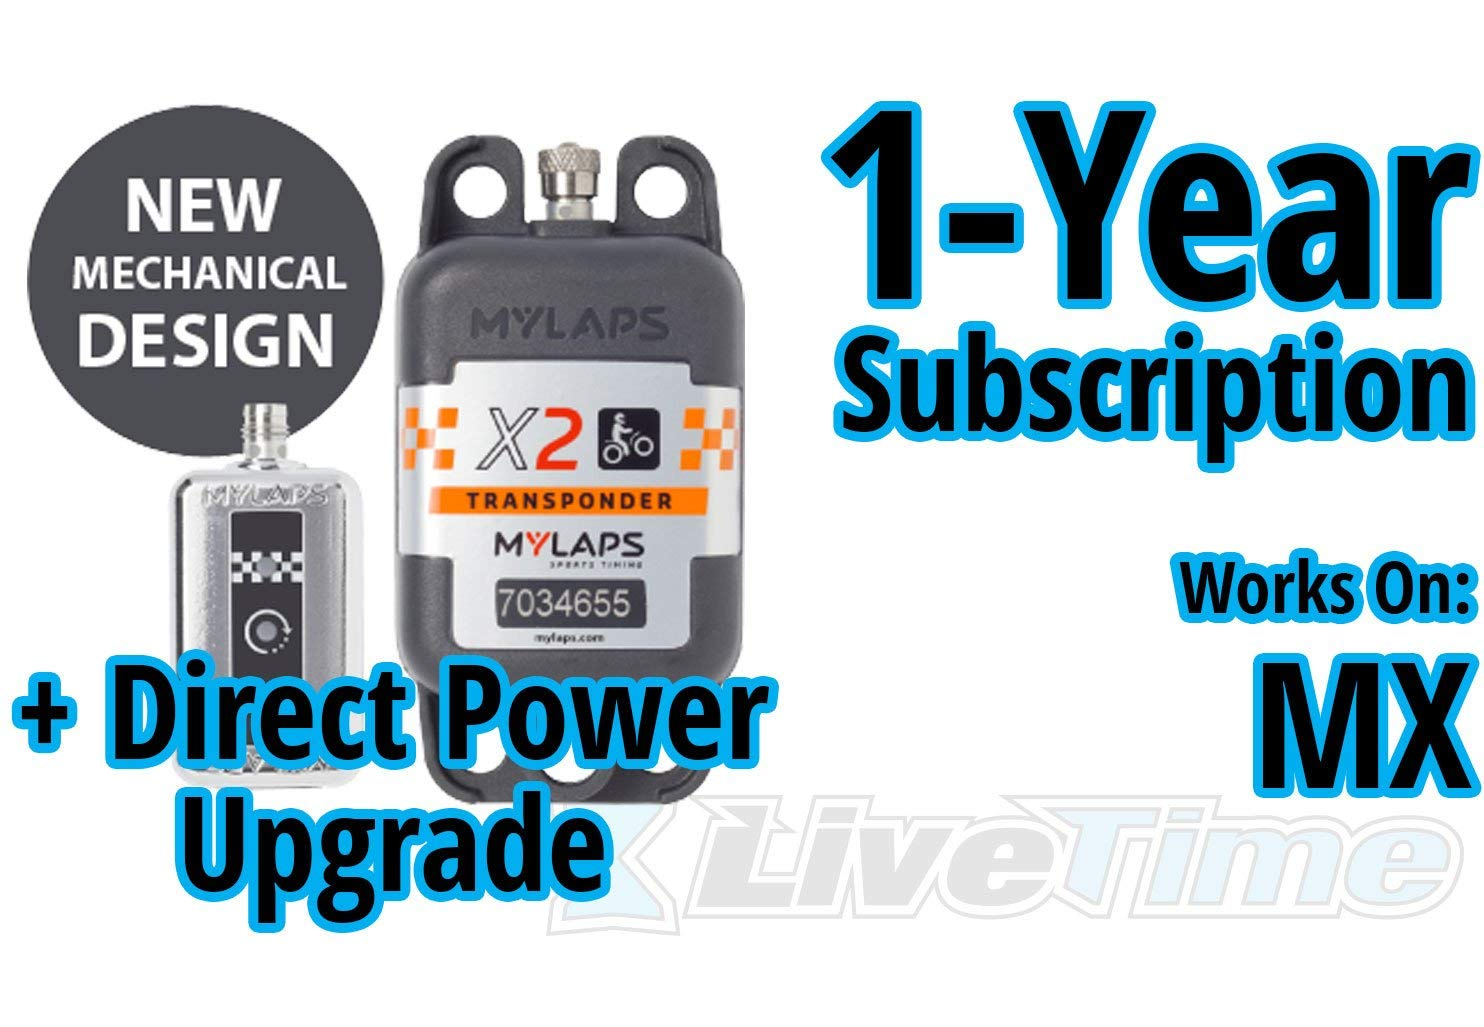 MyLaps X2 Transponder, Direct Power, for MX (motocross), includes 1-Year Subscription